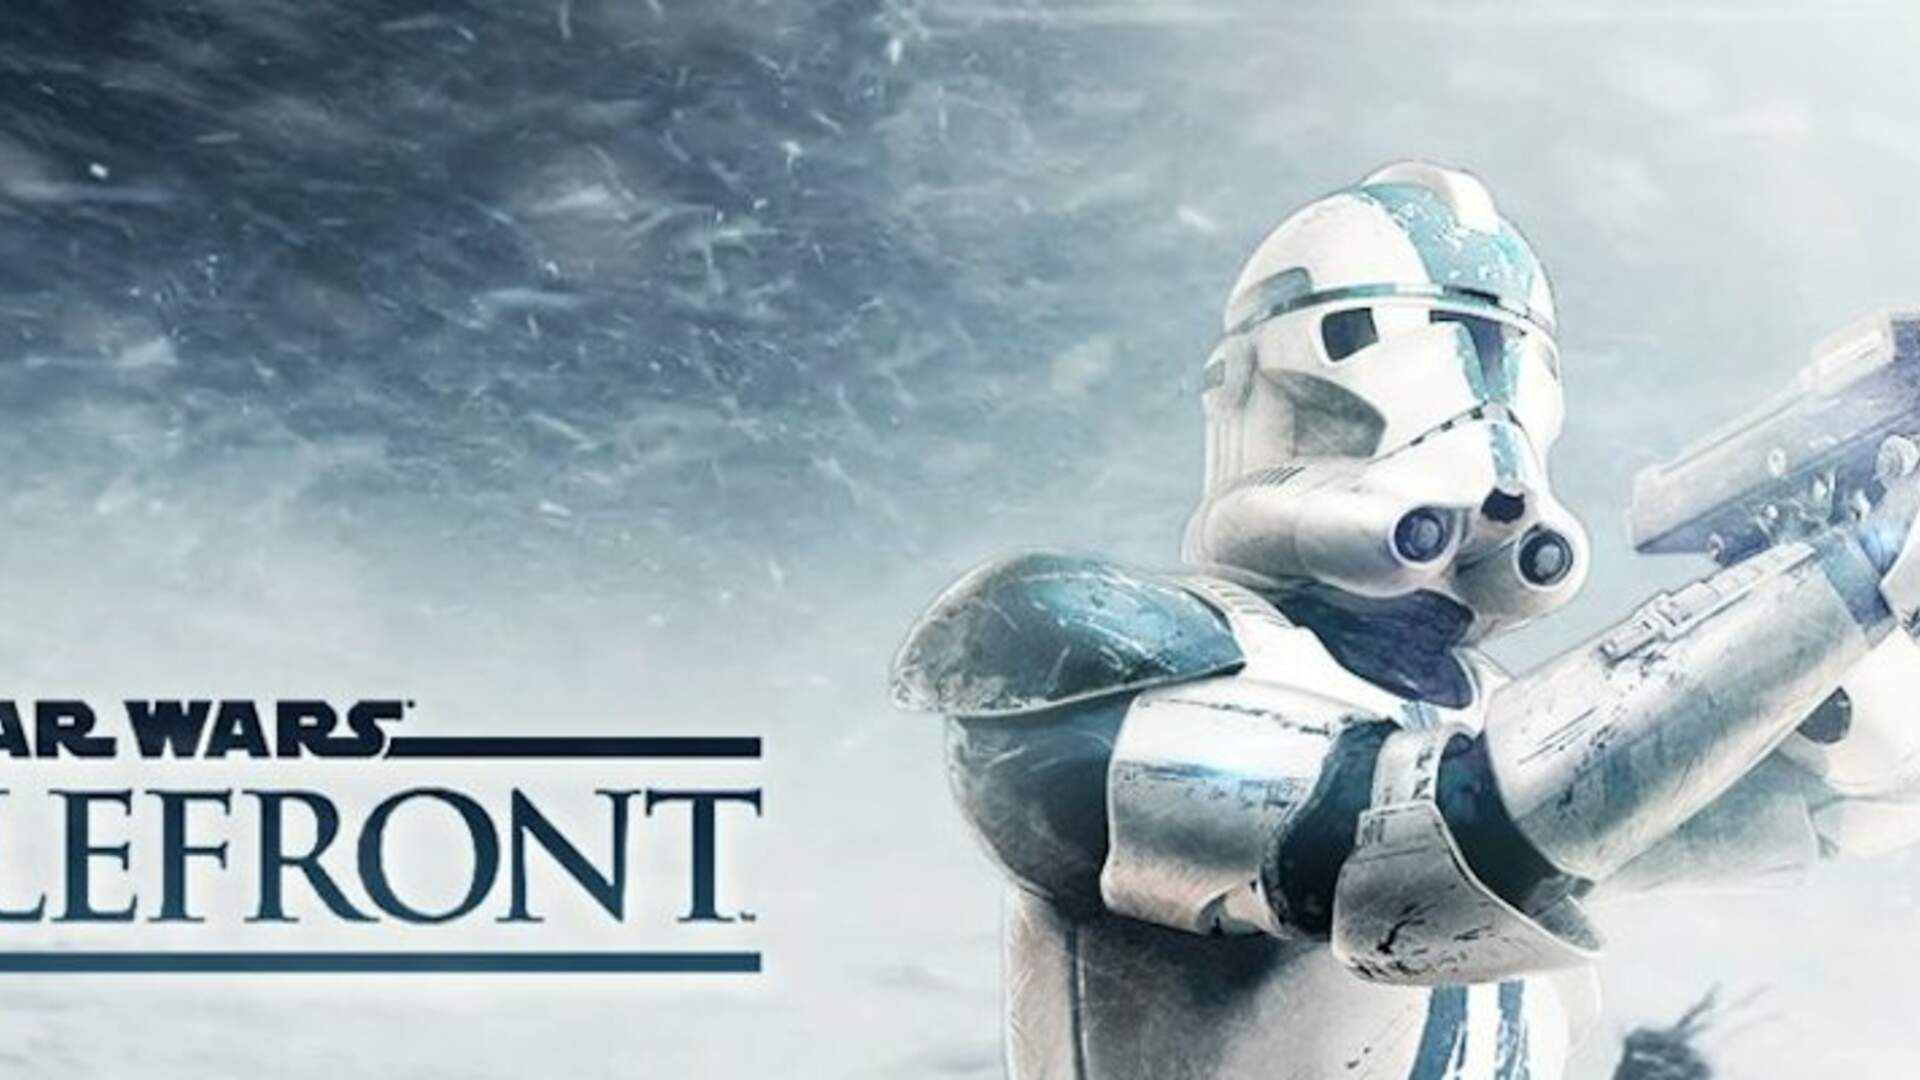 E3 2014: A Glimpse of What to Expect from Star Wars: Battlefront